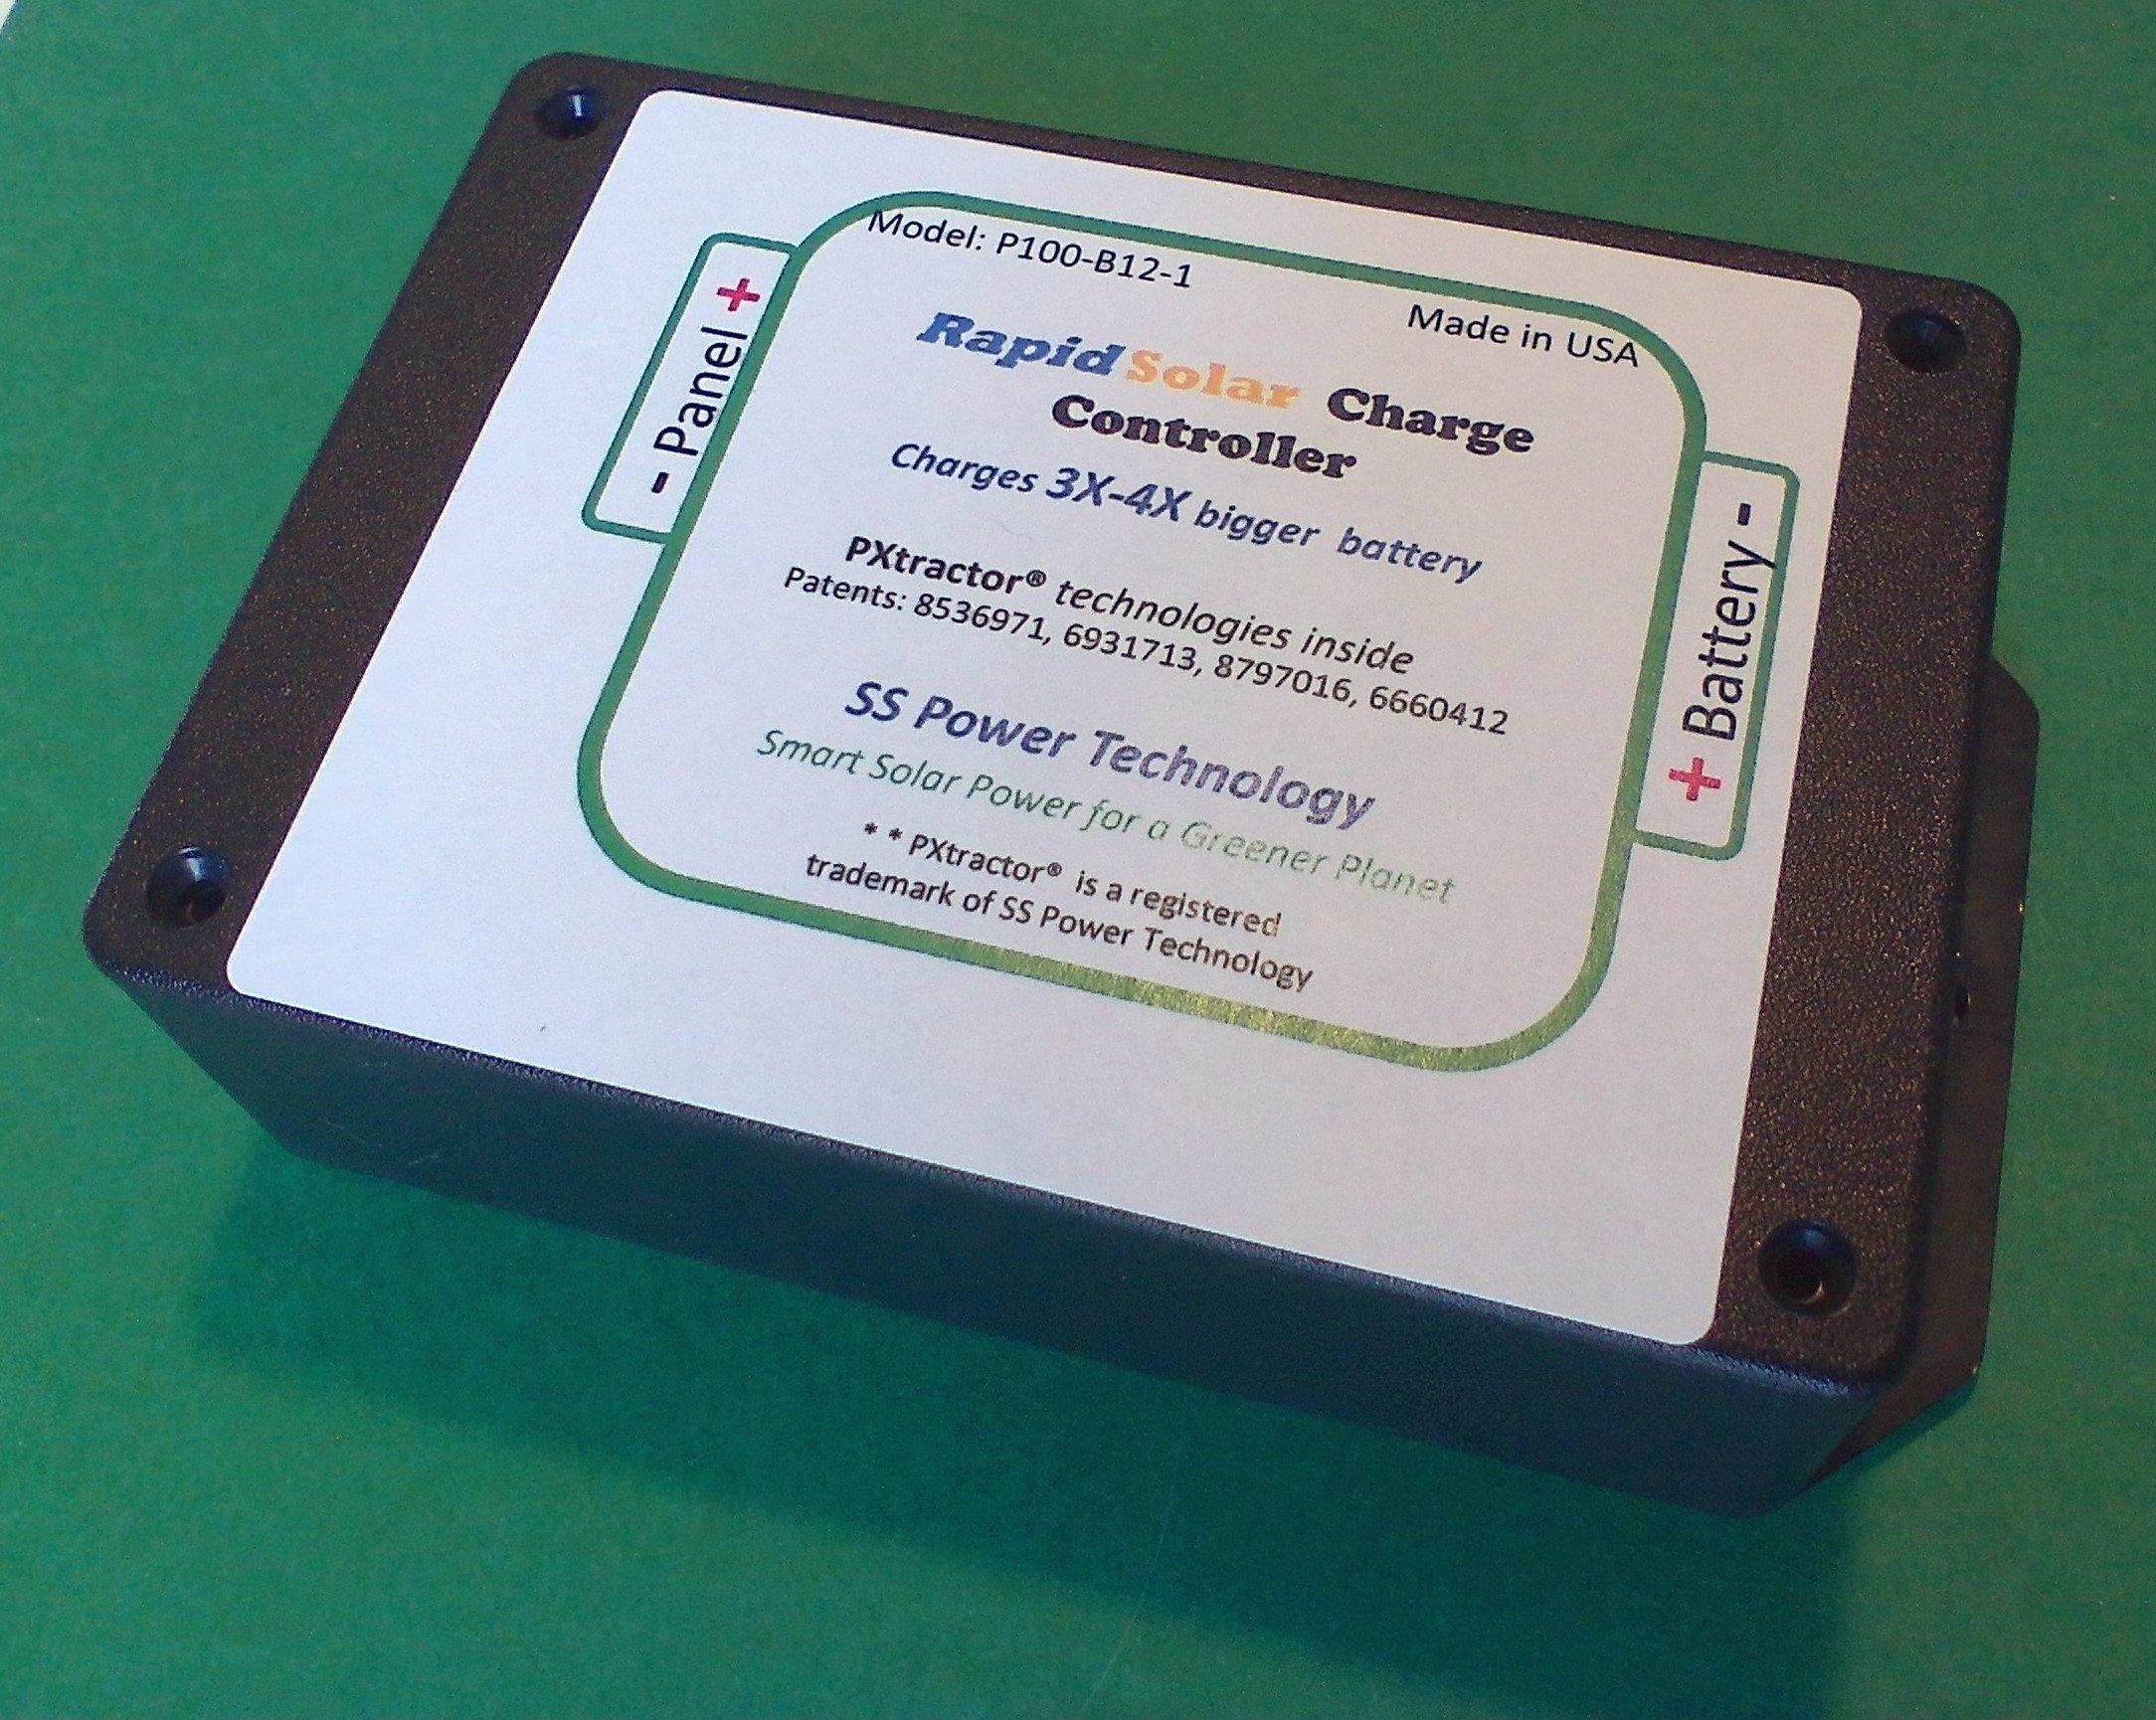 Rapid Solar Charge Controller - Super Solar Charge Controller Charges a 12v Battery 3X-4X Faster Than Any Other Controller - Patented Technology - Fully Automated Operation - Made in USA